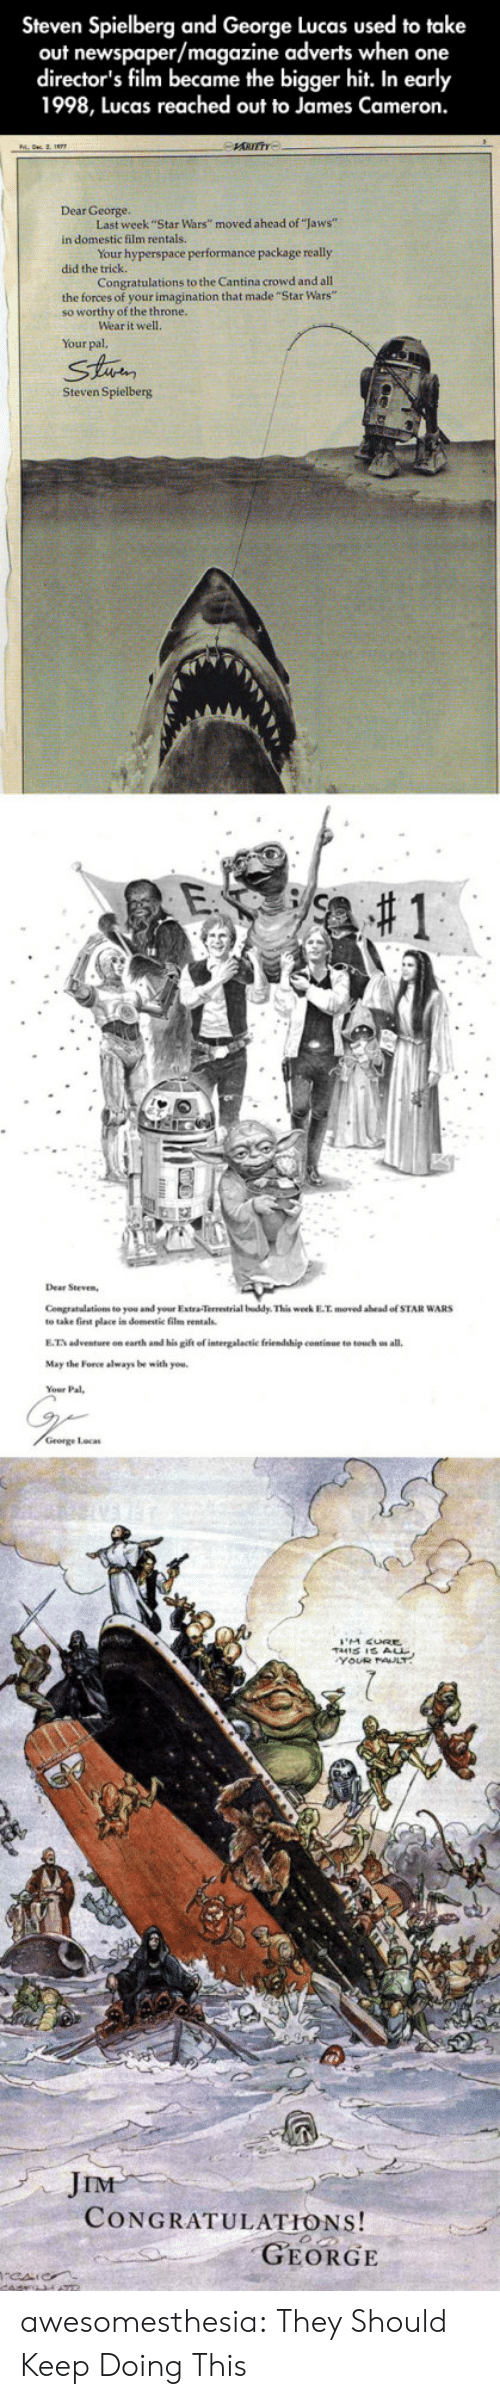 "E.T.: Steven Spielberg and George Lucas used to take  out newspaper/magazine adverts when one  director's film became the bigger hit. In early  1998, Lucas reached out to James Cameron.  Dear George.  Last week ""Star Wars"" moved ahead of ""laws""  in domestic film rentals  Your hyperspace performance package really  did the  Congratulations to the Cantina crowd and all  the forces of your imagination that made """"Star Wars""  so worthy of the throne.  ear it well.  Your pal,  Strin  Steven Spielberg  Congratalations to you and your Extra-Terrestrial buddy This week E.T. moved abead of STAR WARS  to take first elace in domestic film rentals.  E.T adventure on earth and his gift of intergalactic friendship continue to touch us all.  May the Force always be with you.  George Locas  JIM  CONGRATULATIONS!  GEORGE awesomesthesia:  They Should Keep Doing This"